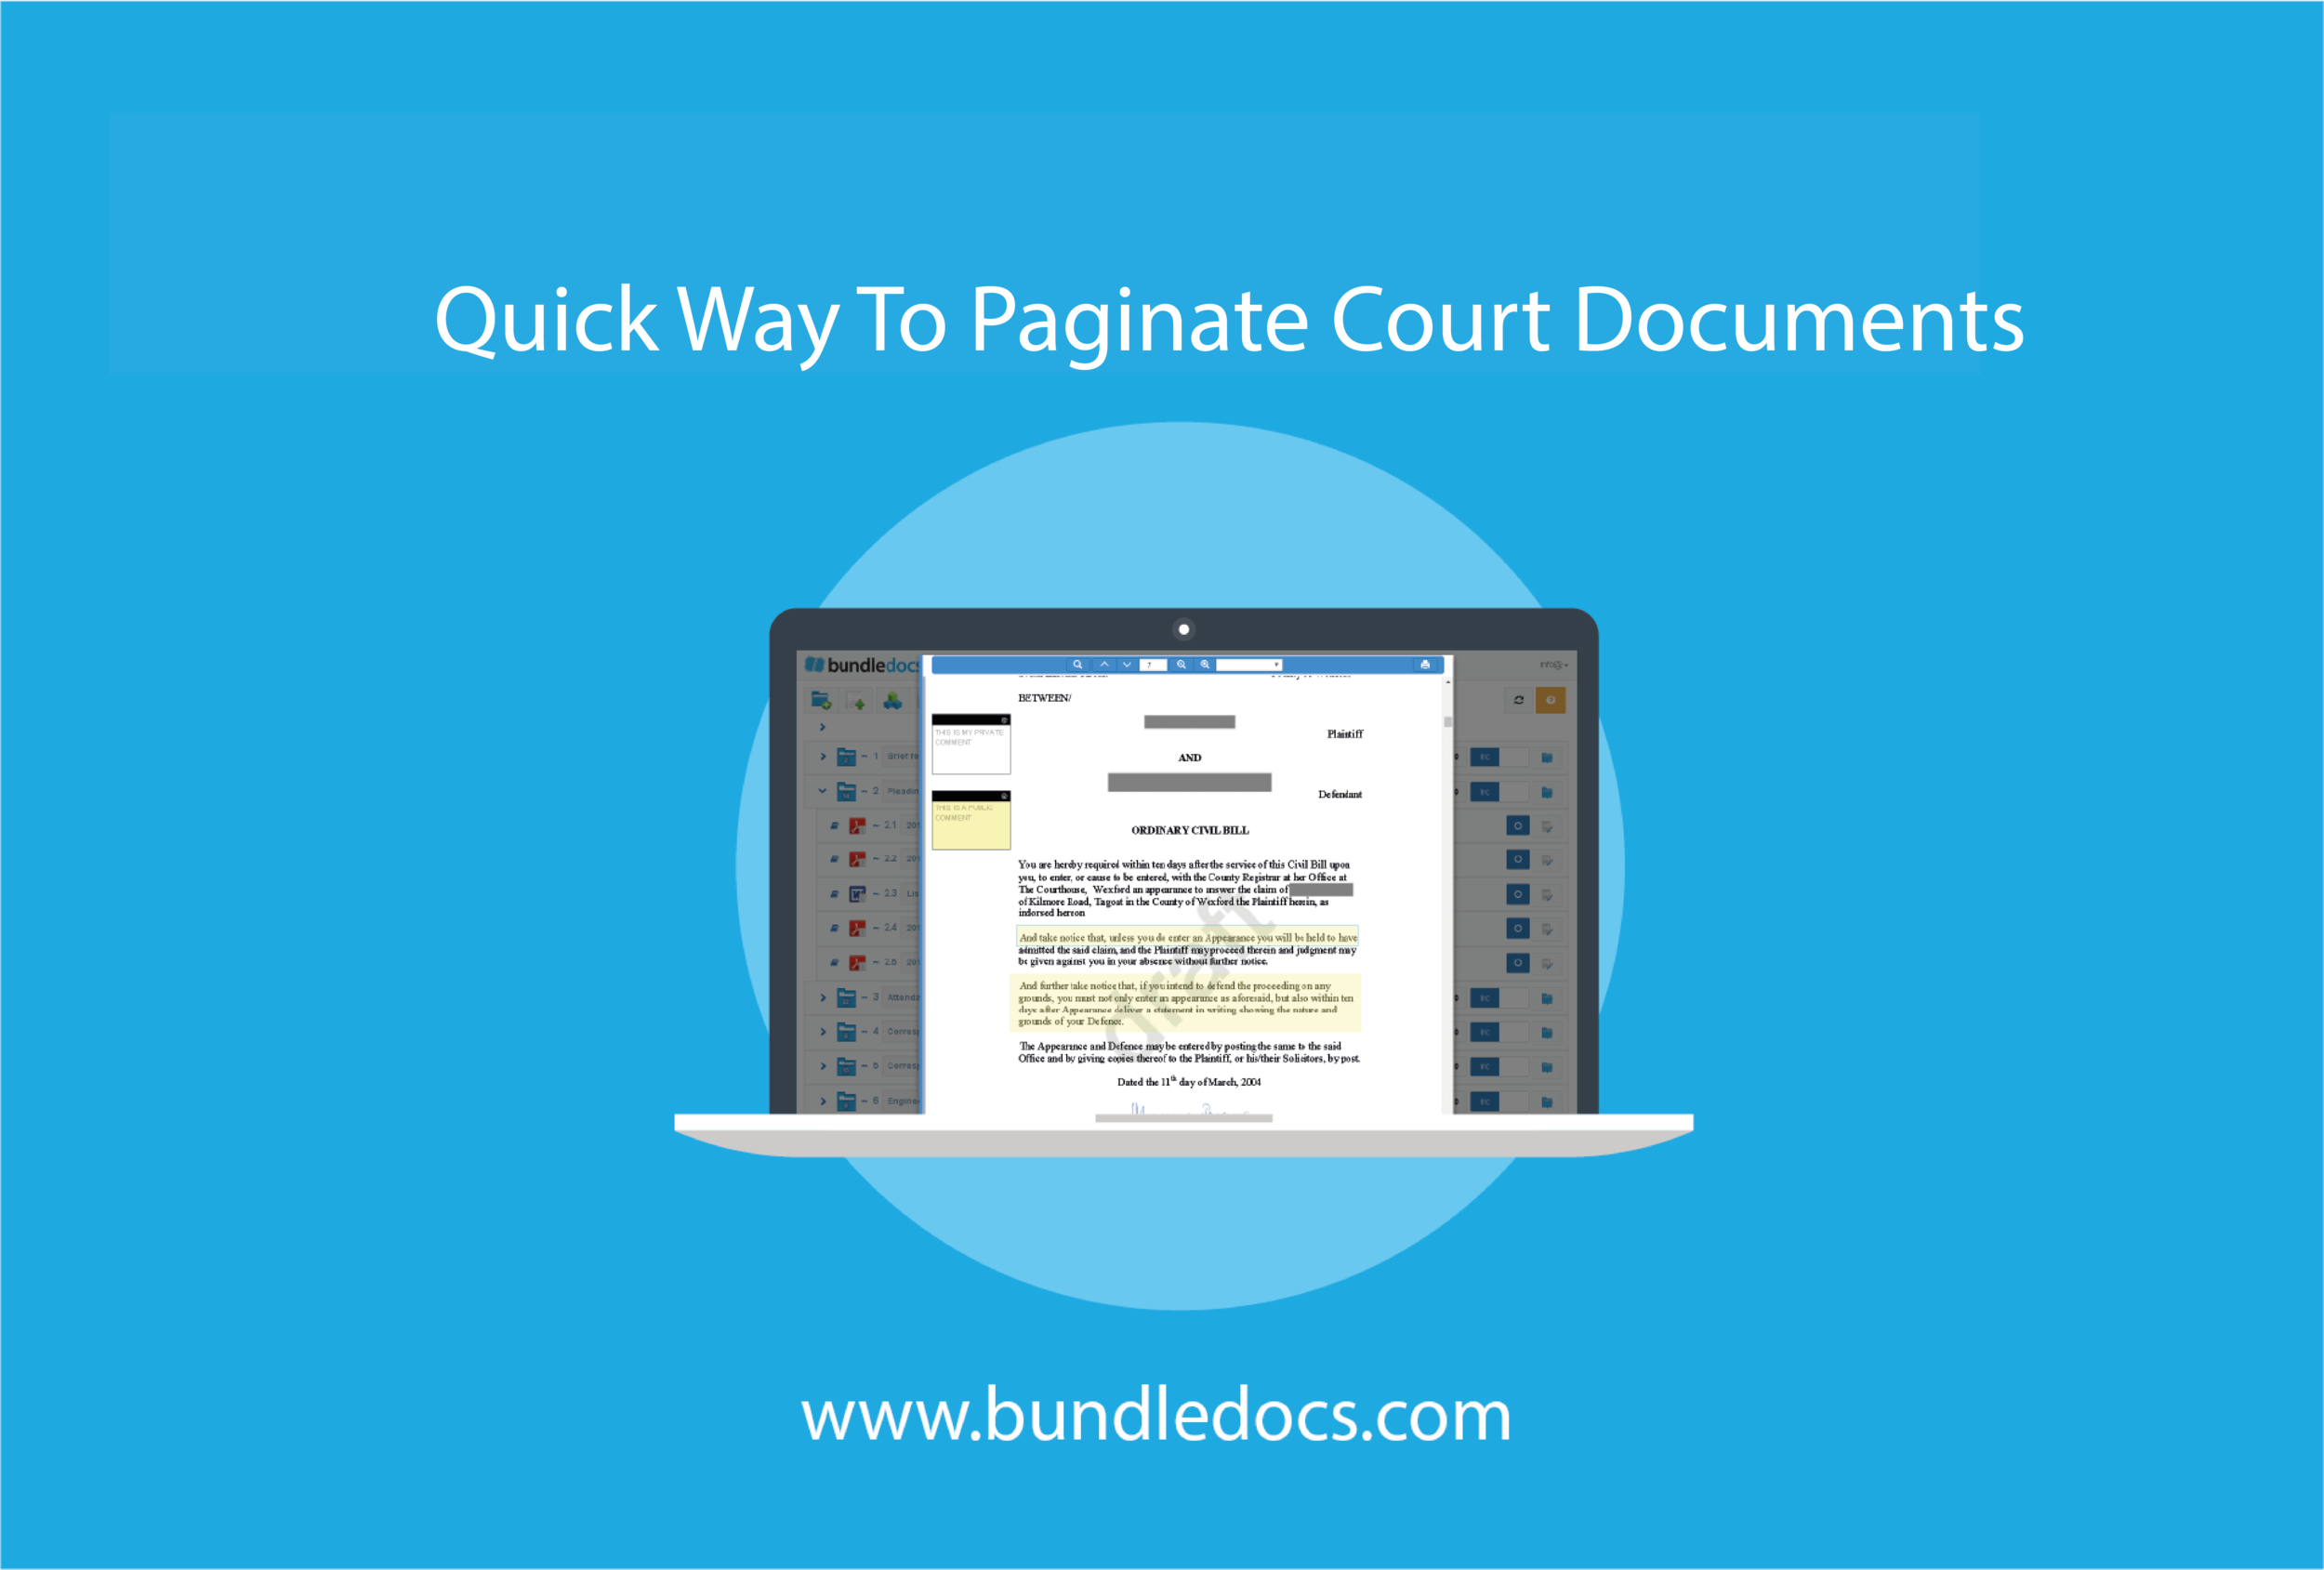 Quick_Way_To_Paginate_Court_Documents_Automatically_Bundledocs.png